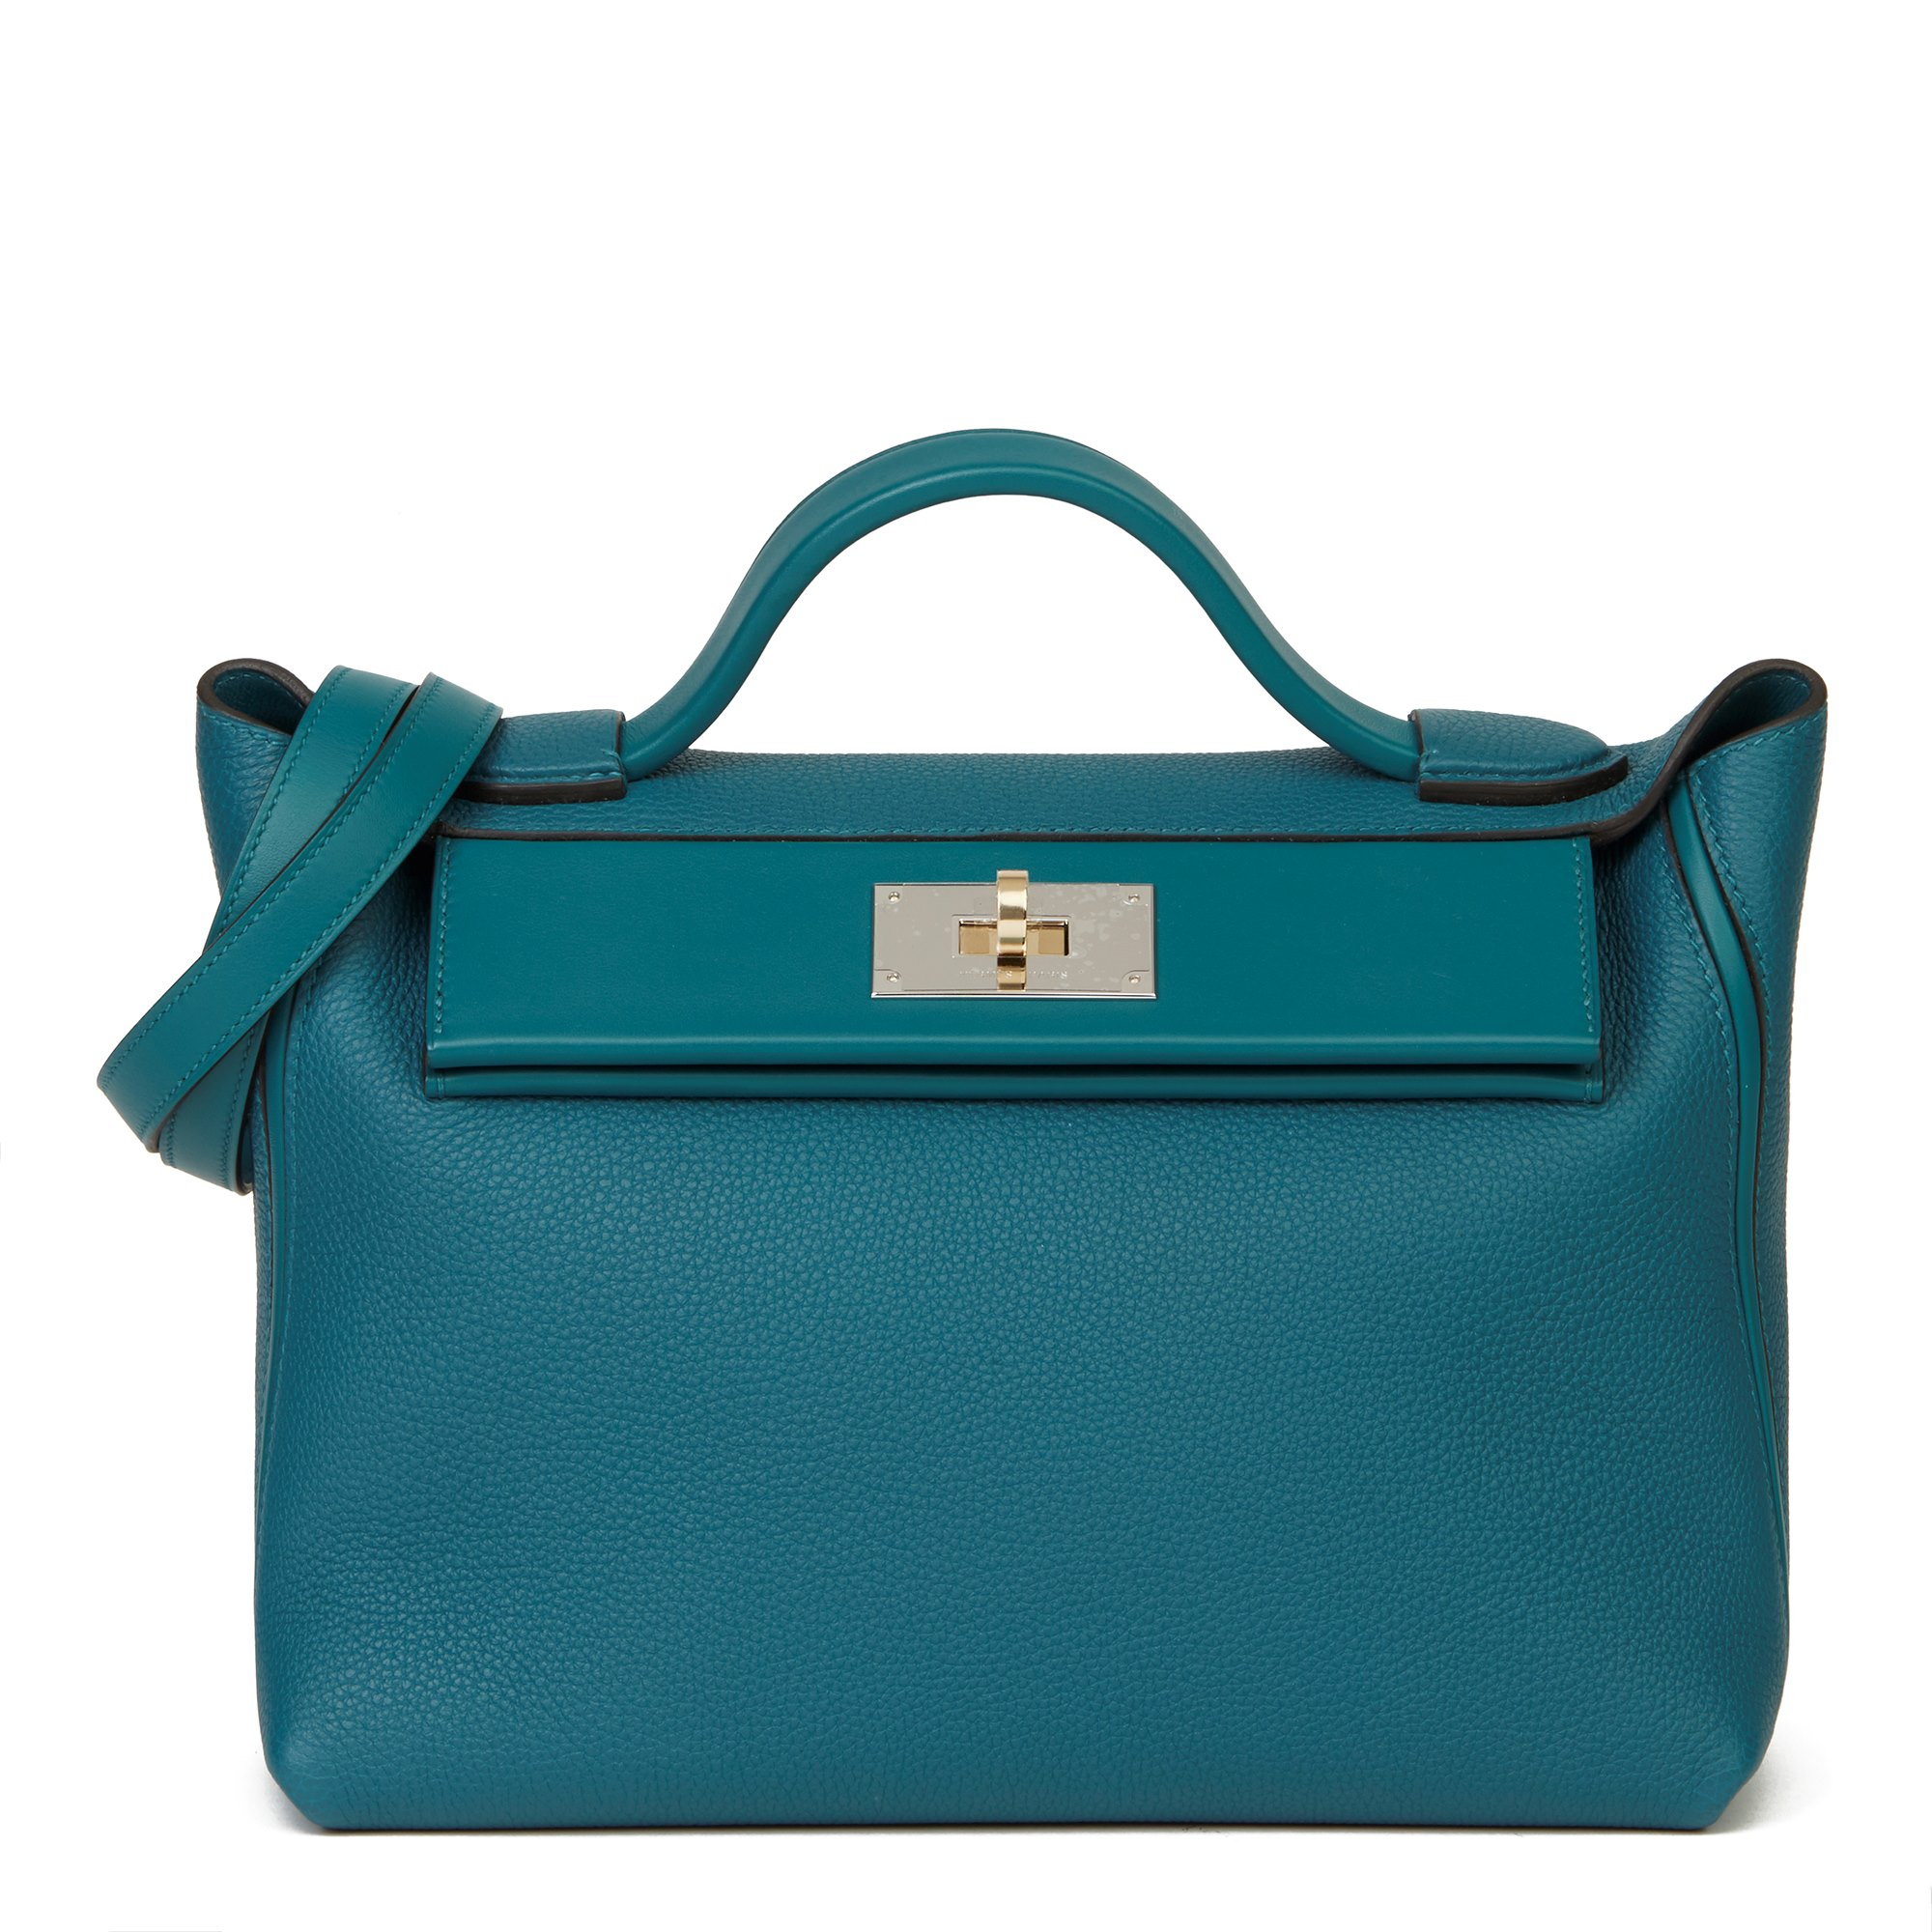 Hermès Vert Bosphore Togo & Swift Leather Leather 24/24 29cm